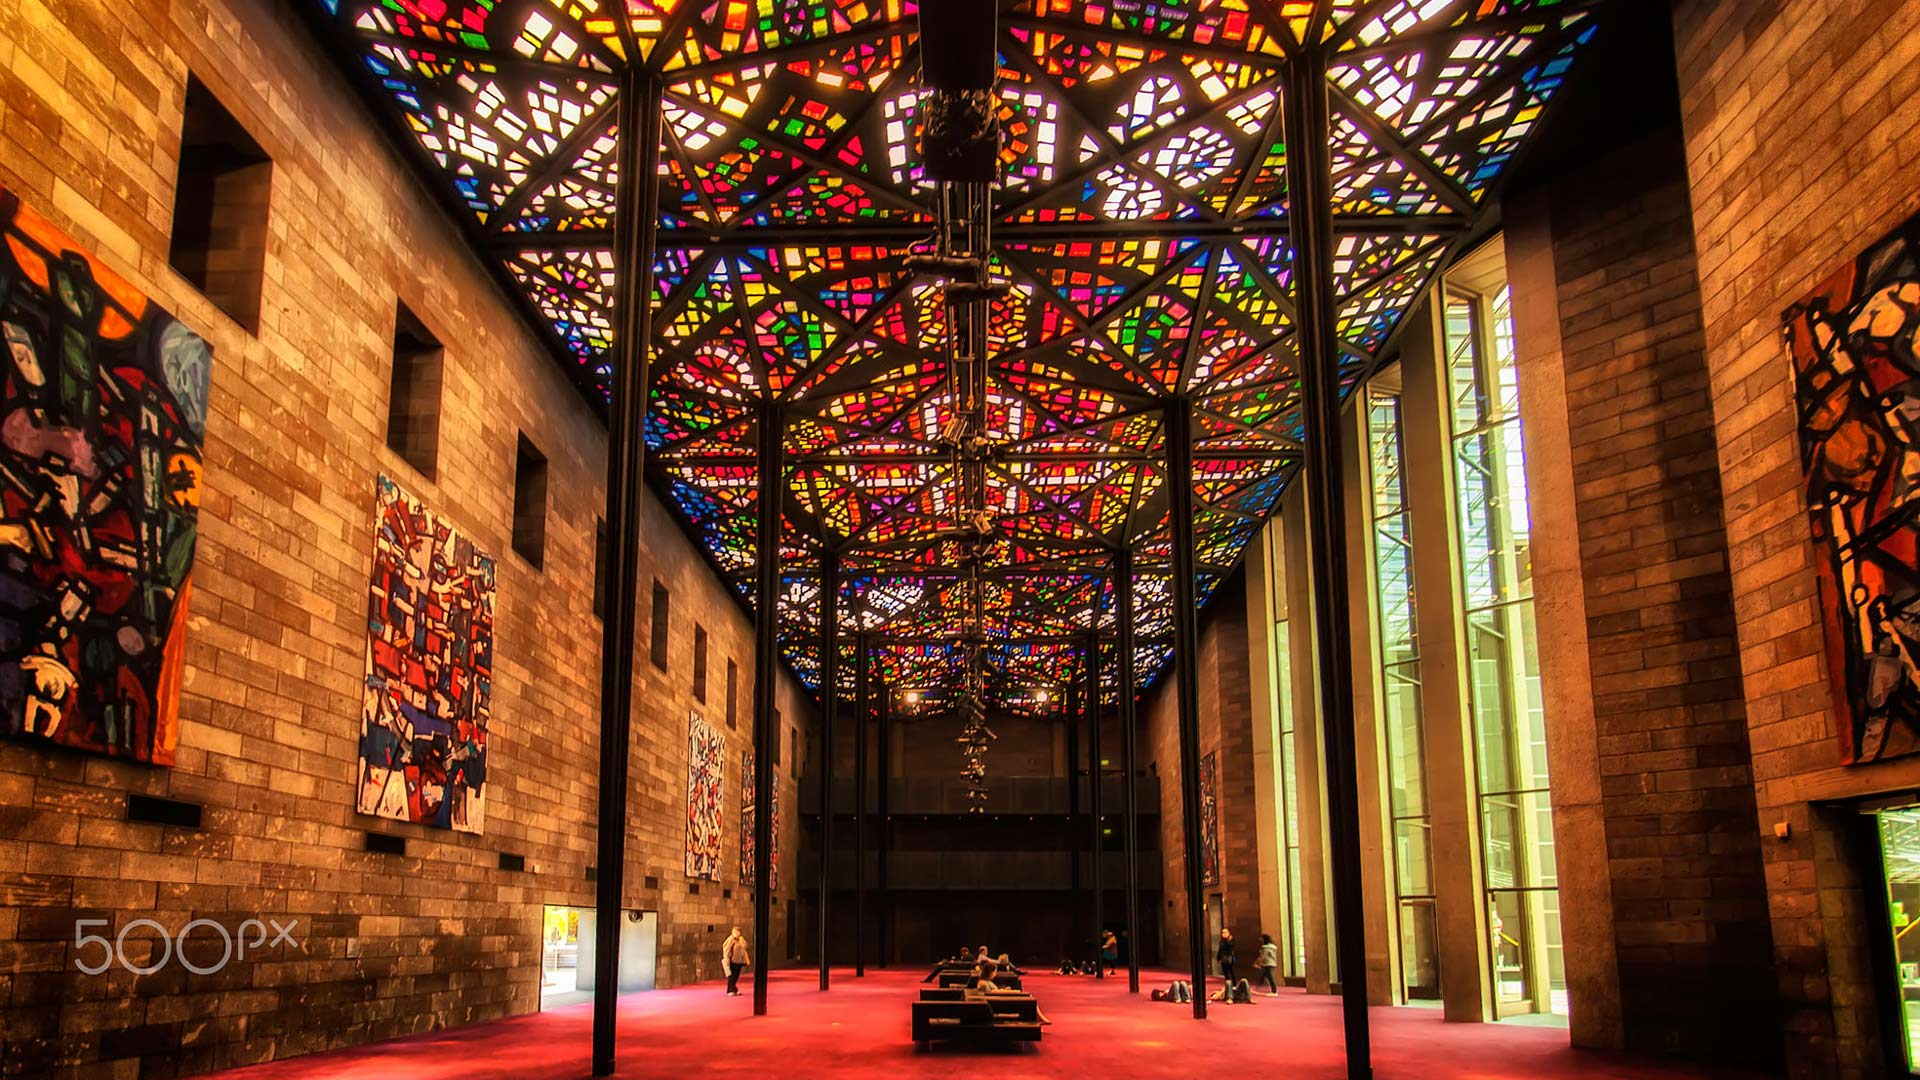 National gallery of victoria australia TDS